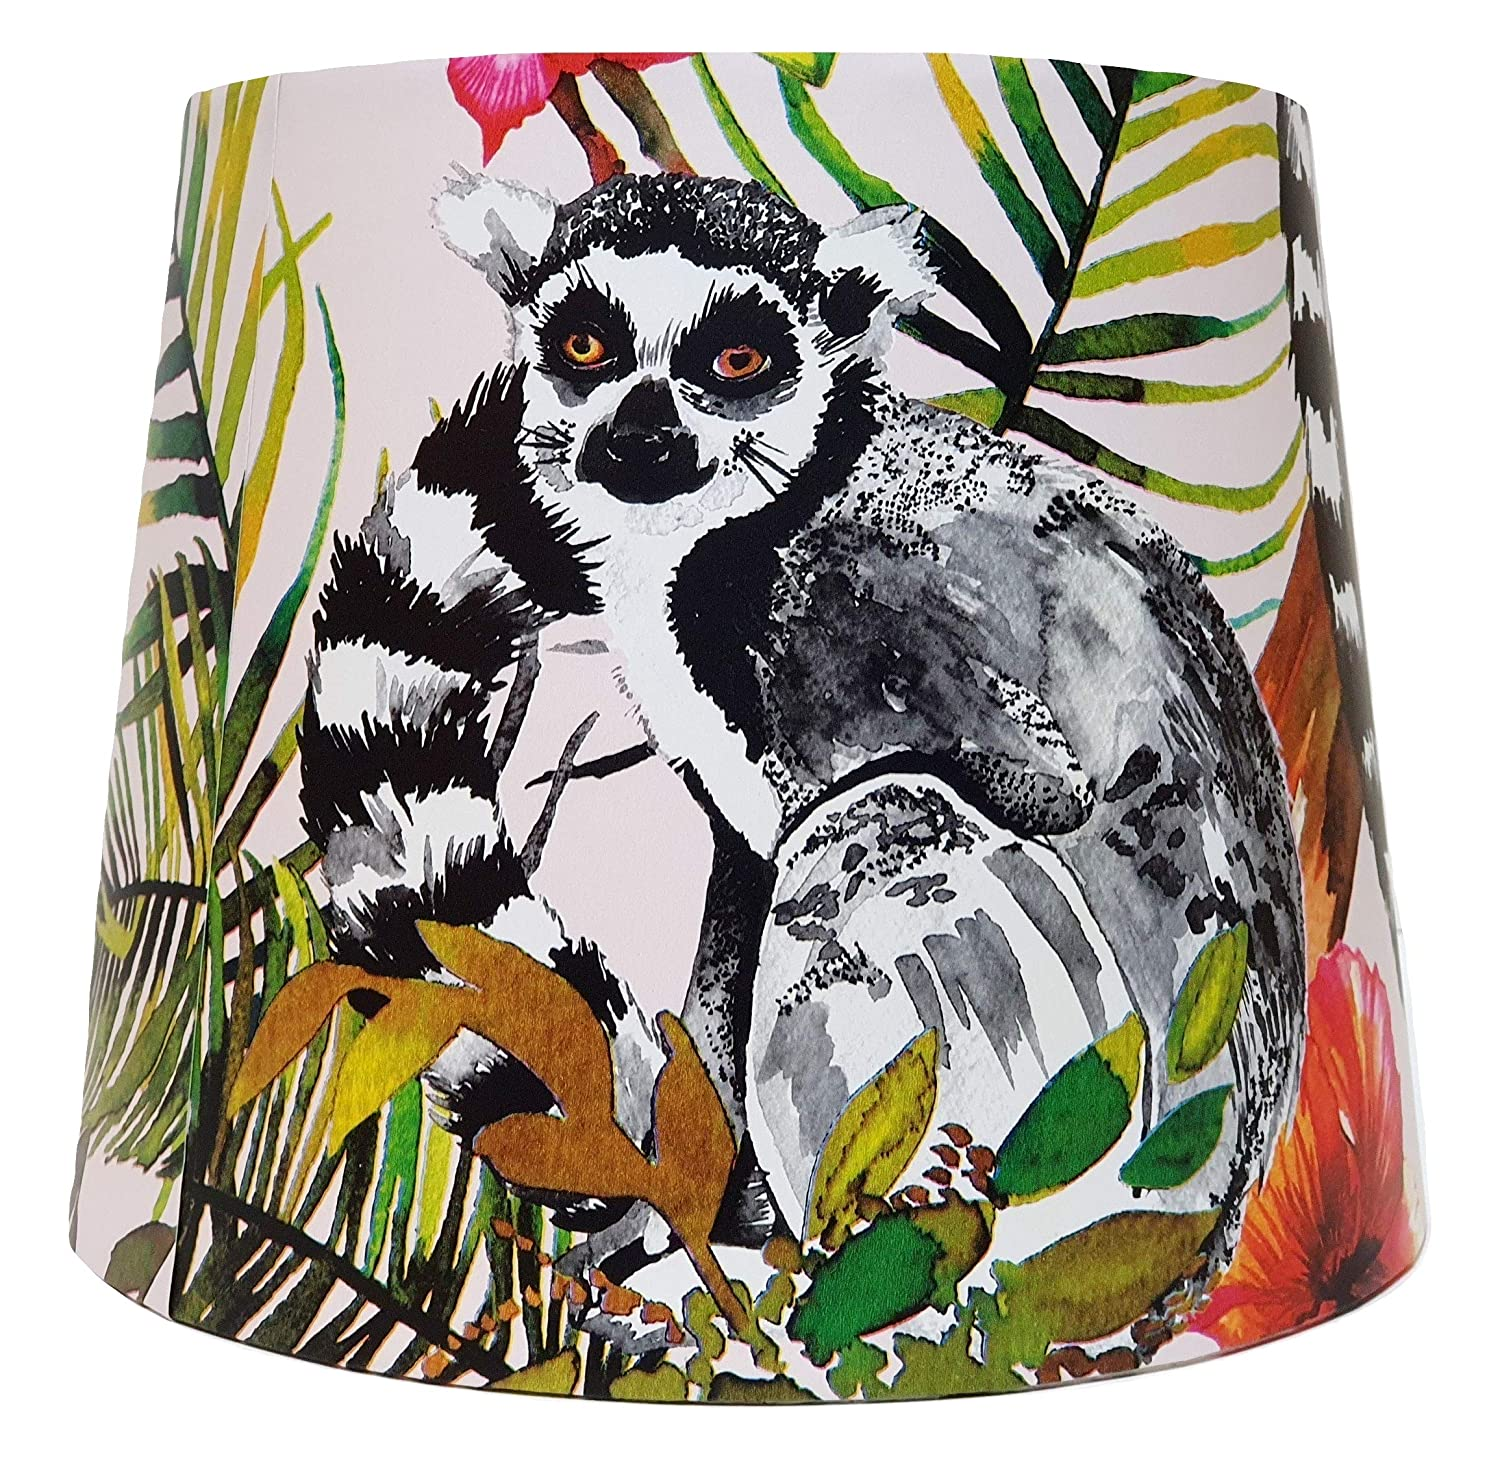 Tropical Lemur Table Lampshade or Ceiling Light Shade Jungle Animals Botanical Bedroom Accessories Gifts Masoala Pink